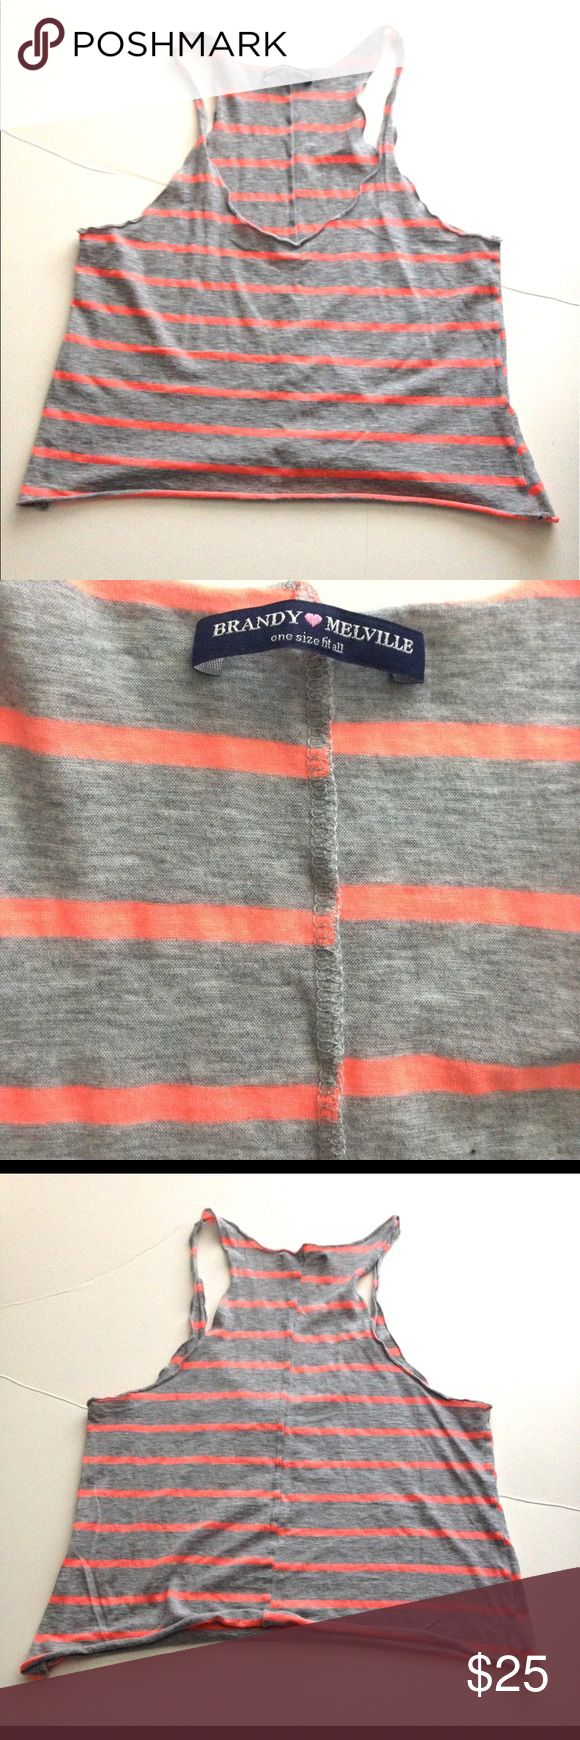 Brandy Melville casual pink striped tank top Brandy Melville casual pink striped tank top Brandy Melville Tops Tank Tops